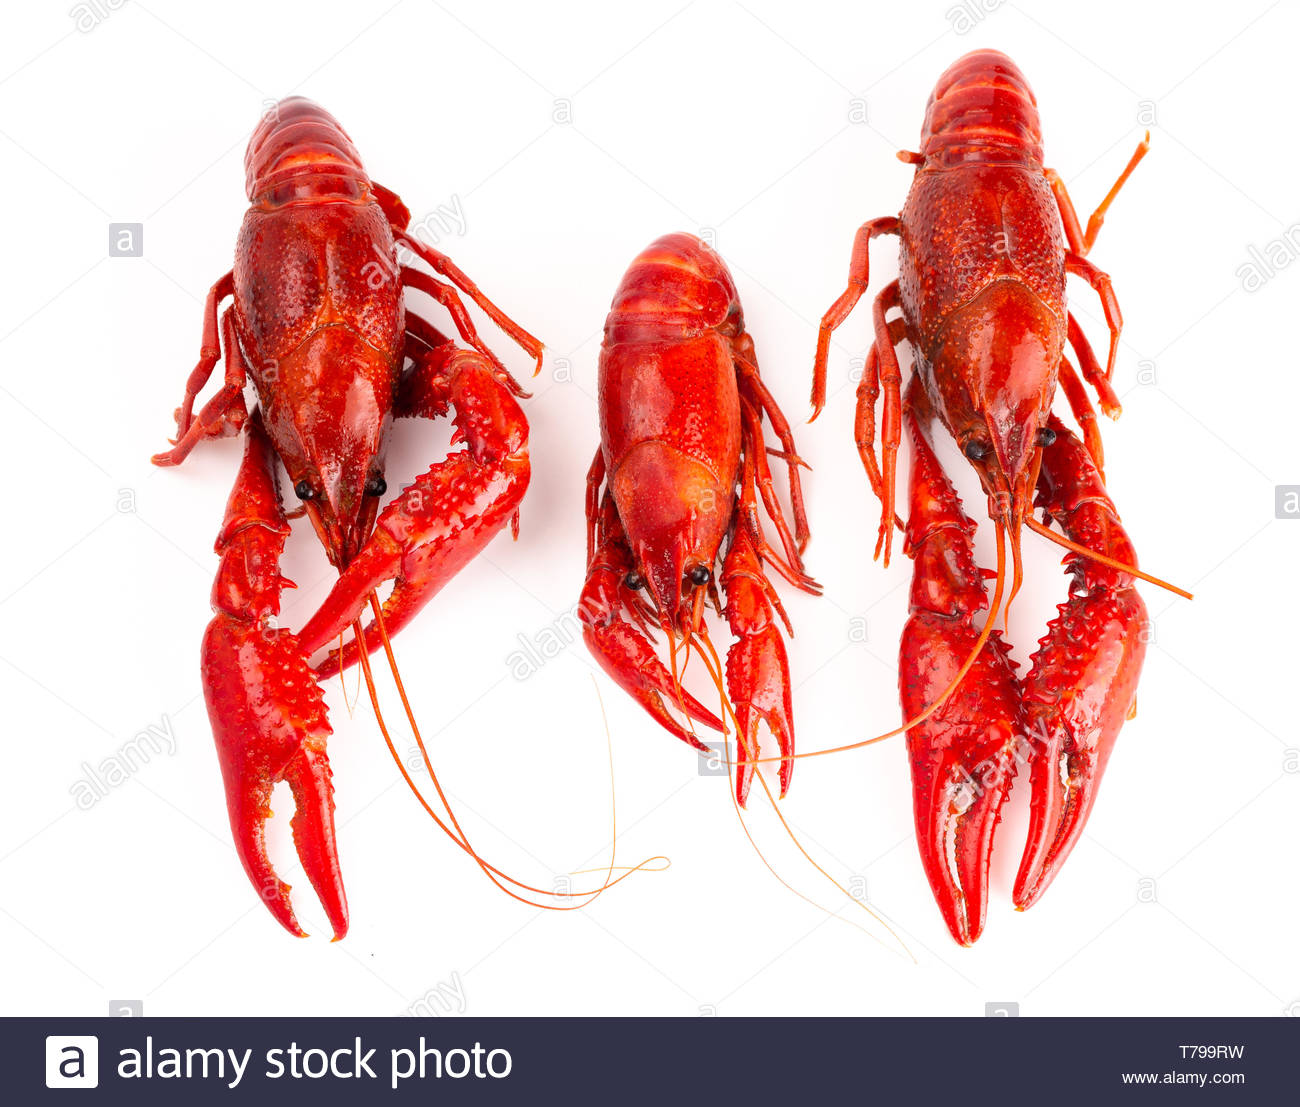 Cooked Red Crawfish Isolated on a White Background Stock Photo 1300x1107